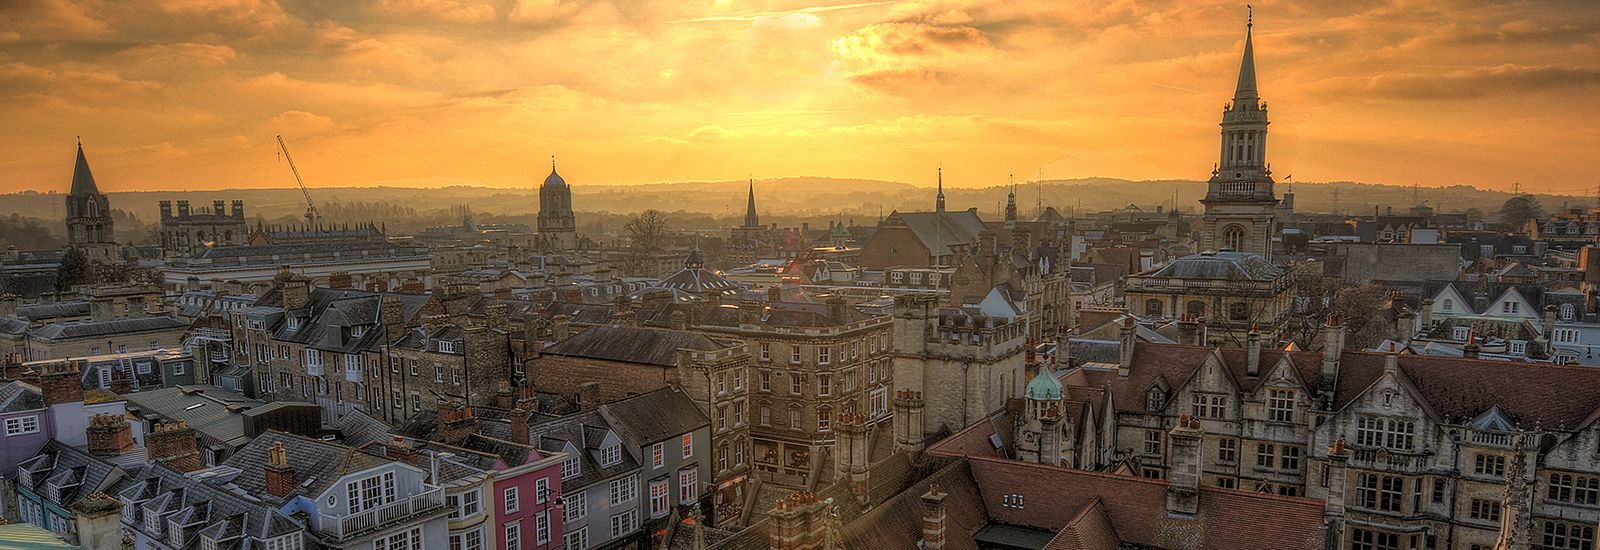 Sunset over Oxford